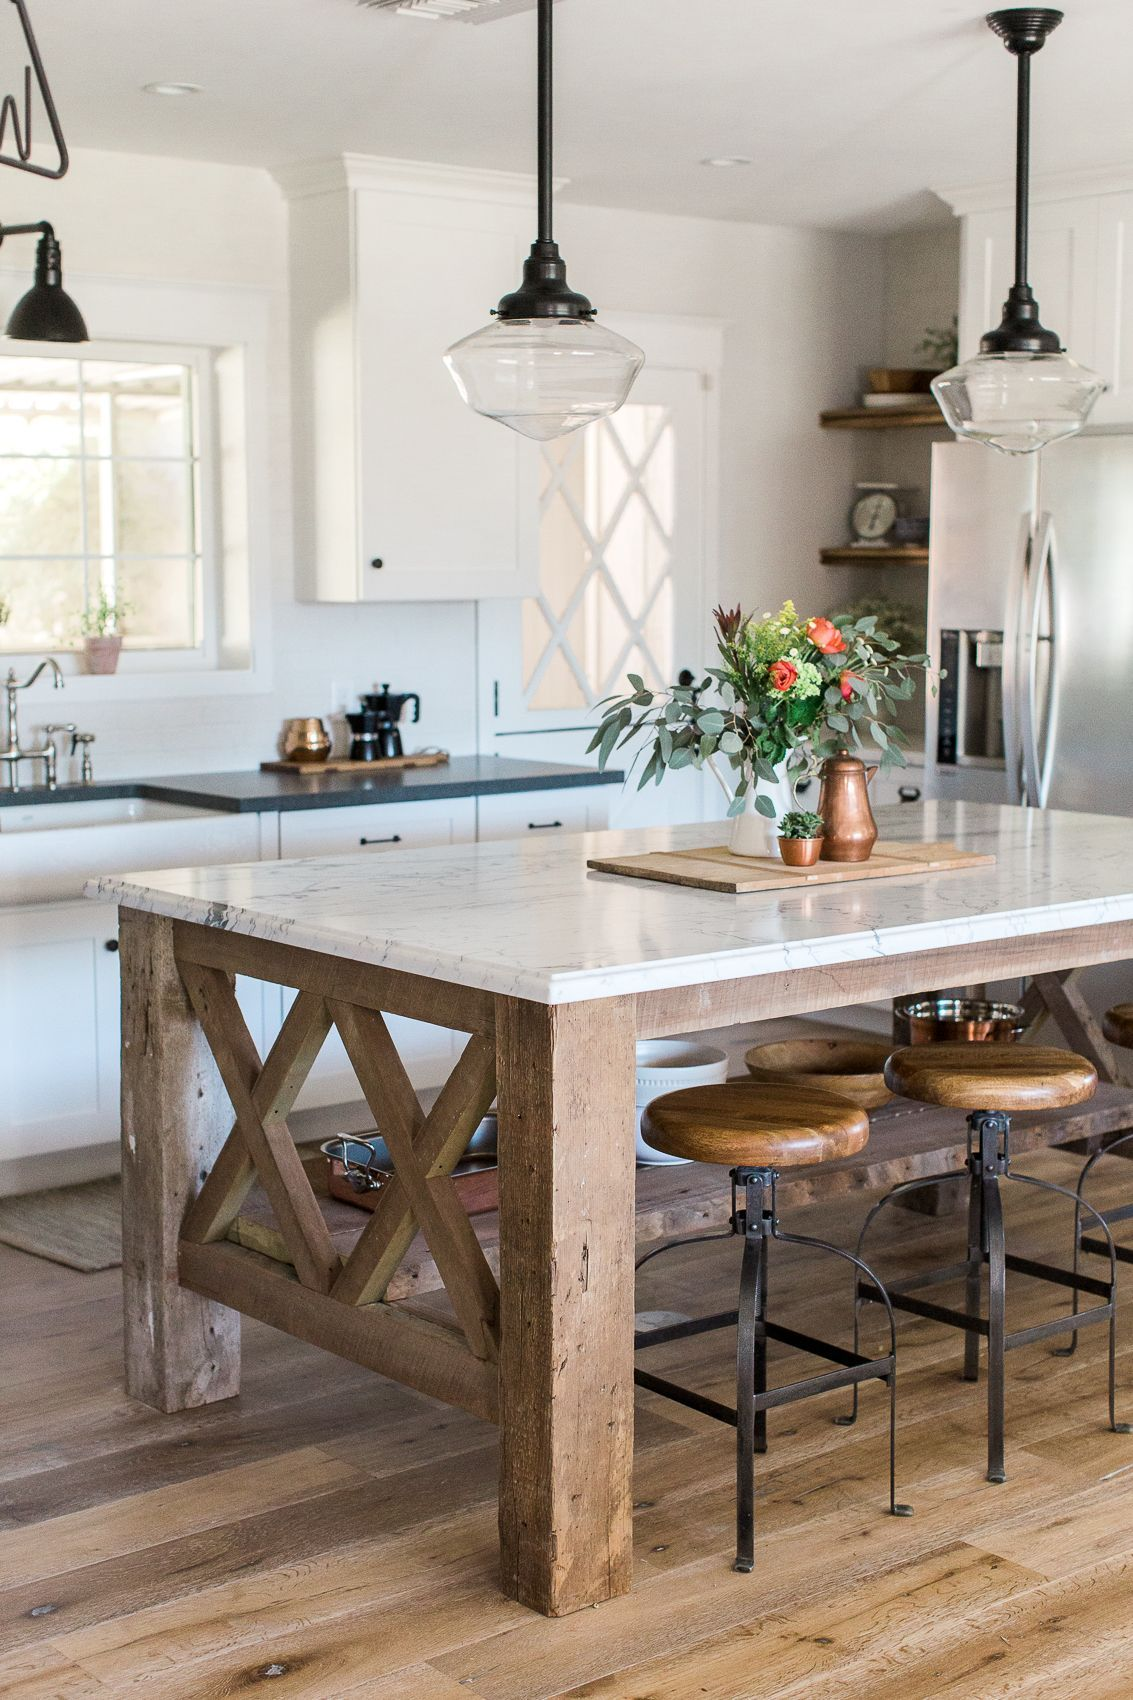 How To Have Exciting Kitchen Island Designs Diy Home Art Custom Kitchen Island Rustic Kitchen Island Farmhouse Kitchen Island Unique kitchen table ideas